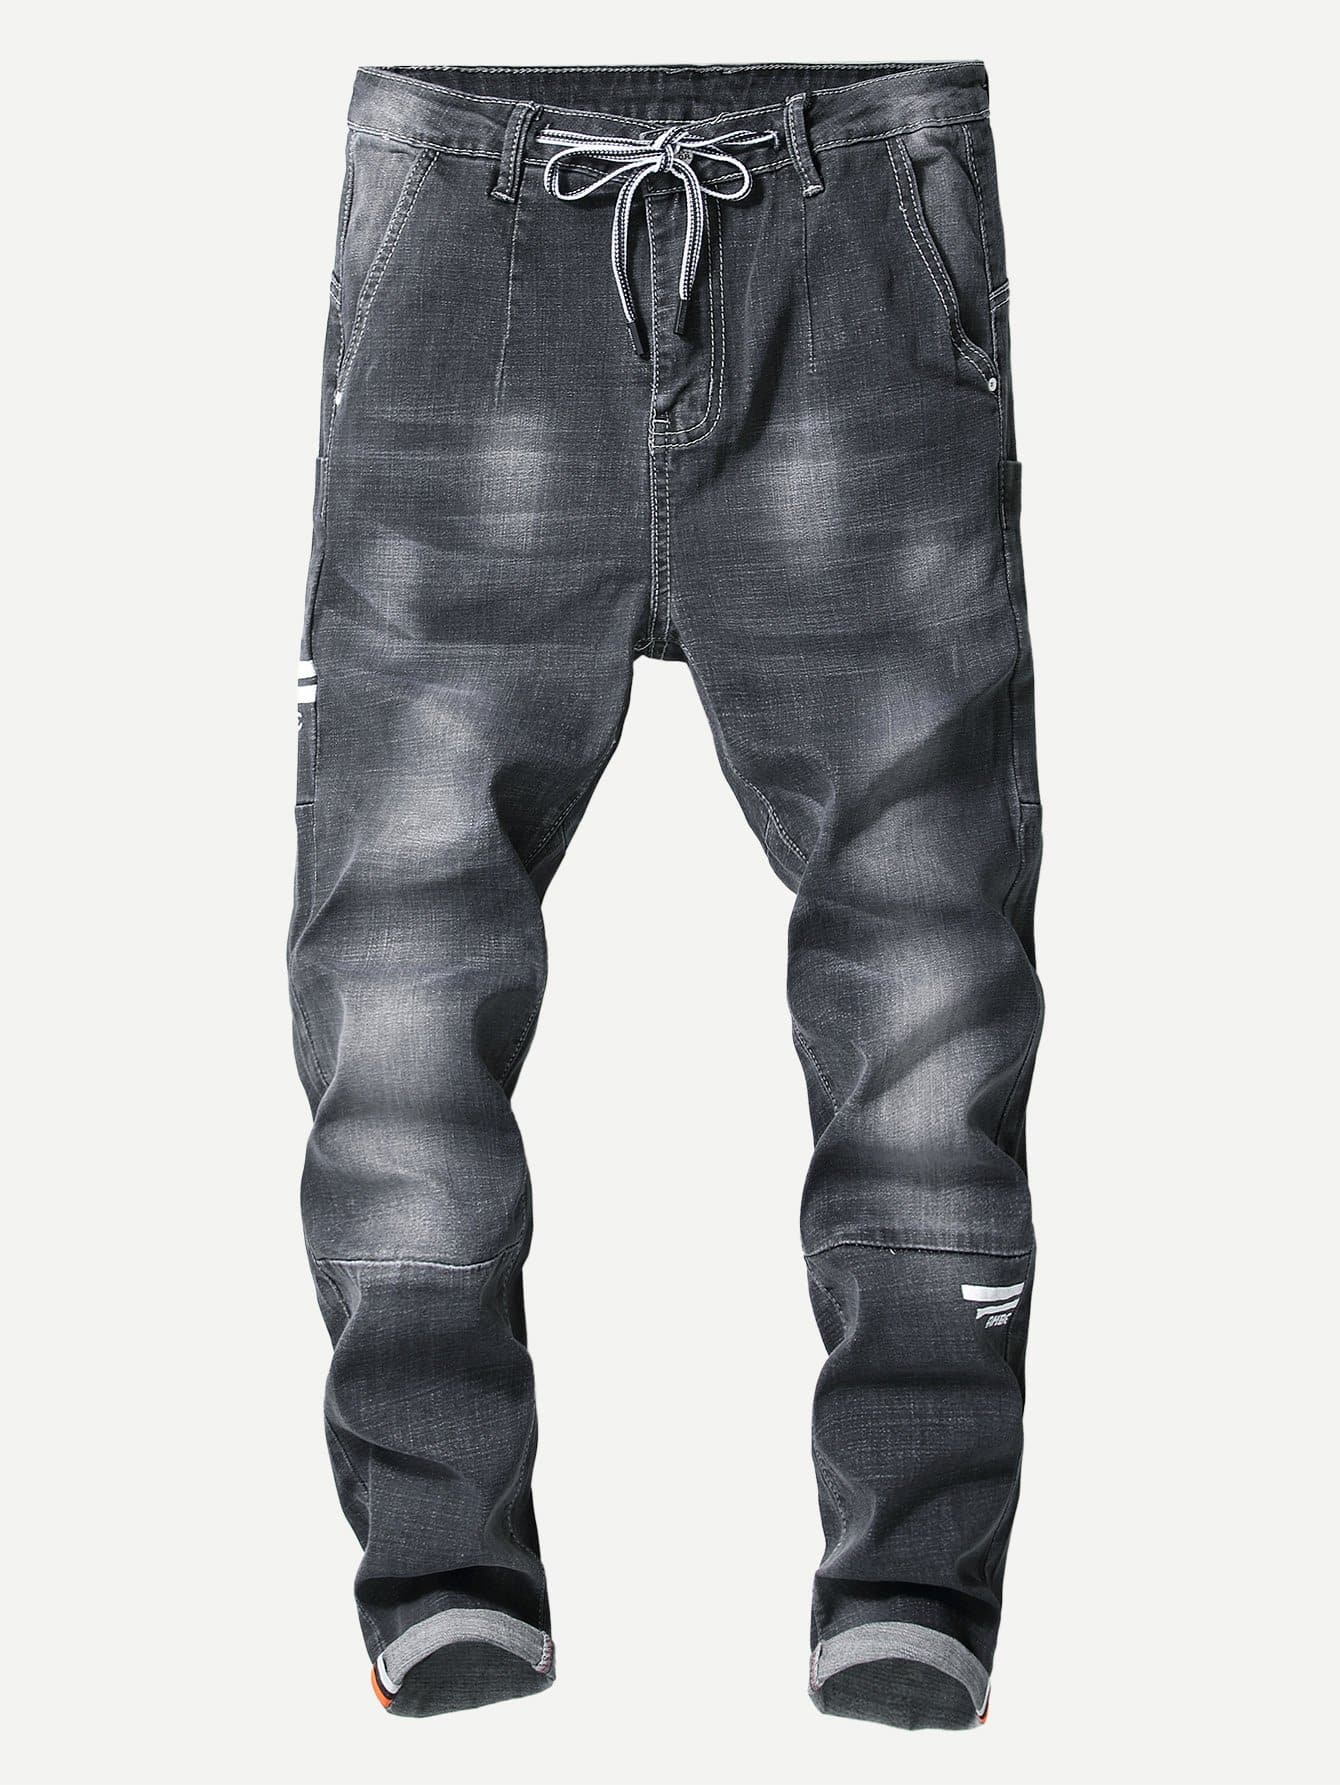 Men Cut And Sew Panel Drawstring Jeans Men Cut And Sew Panel Drawstring Jeans